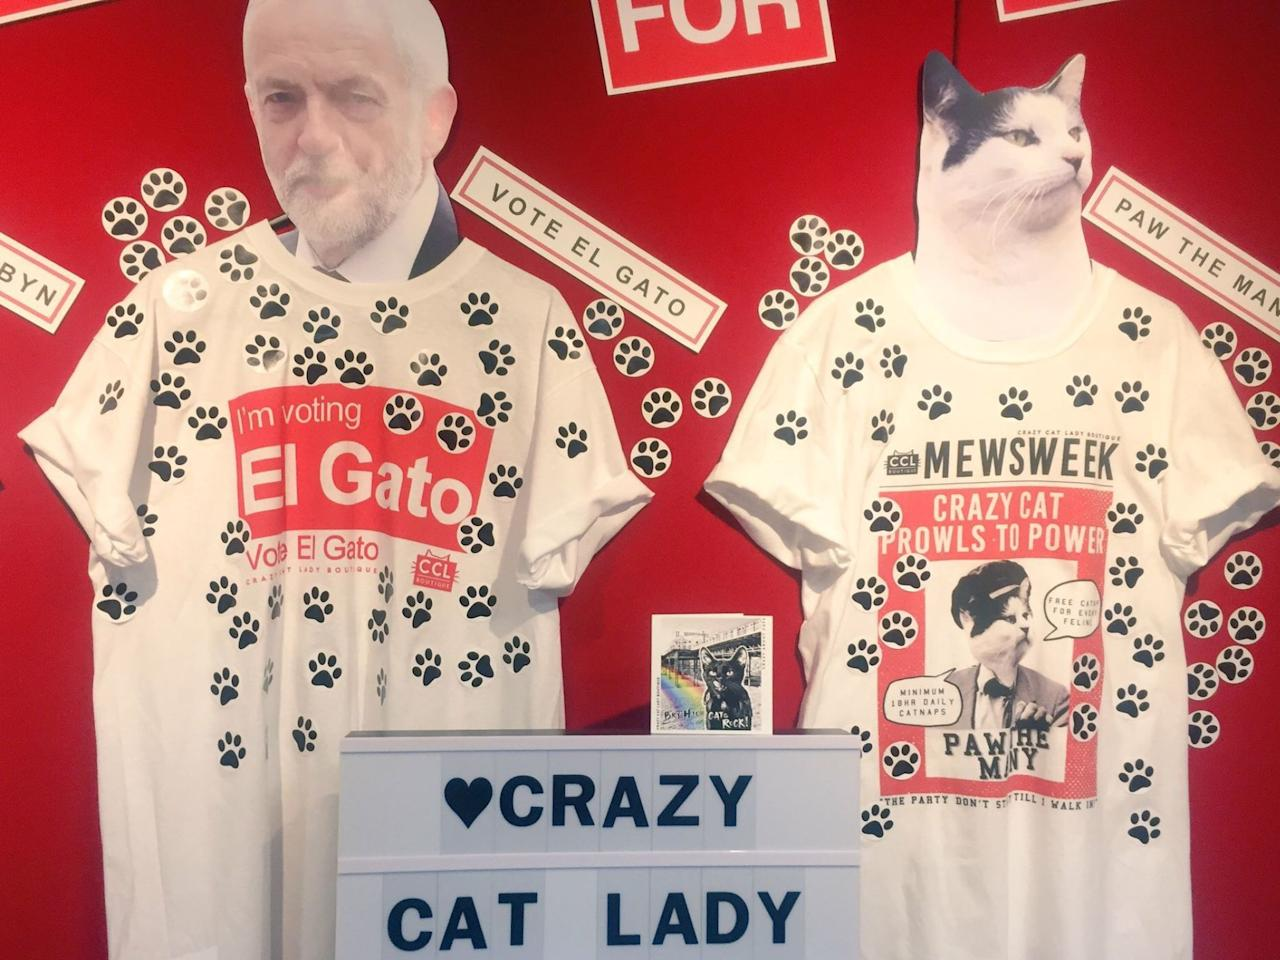 <p>For those uninformed (and clearly not <em>true</em> Corbyn fans) the Labour leader's cat is called El Gato. If you want to make sure you're supporting the full Corbyn family, make sure you pick up one of these heavily paw-printed t-shirts at the conference. (Sky News) </p>